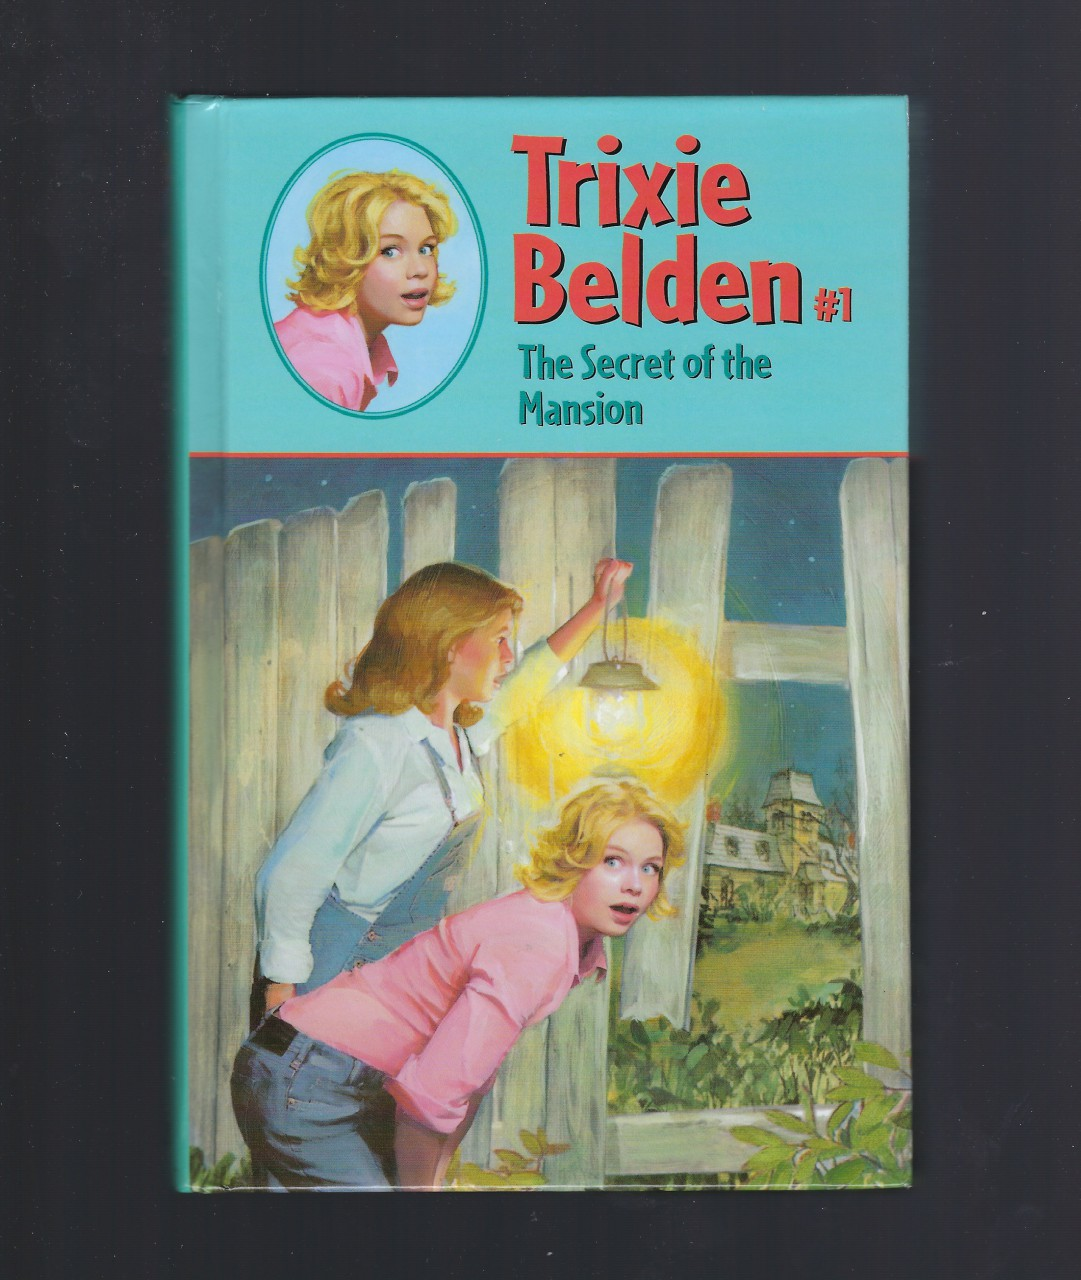 The Secret of the Mansion (Trixie Belden #1) Hardback, Julie Campbell